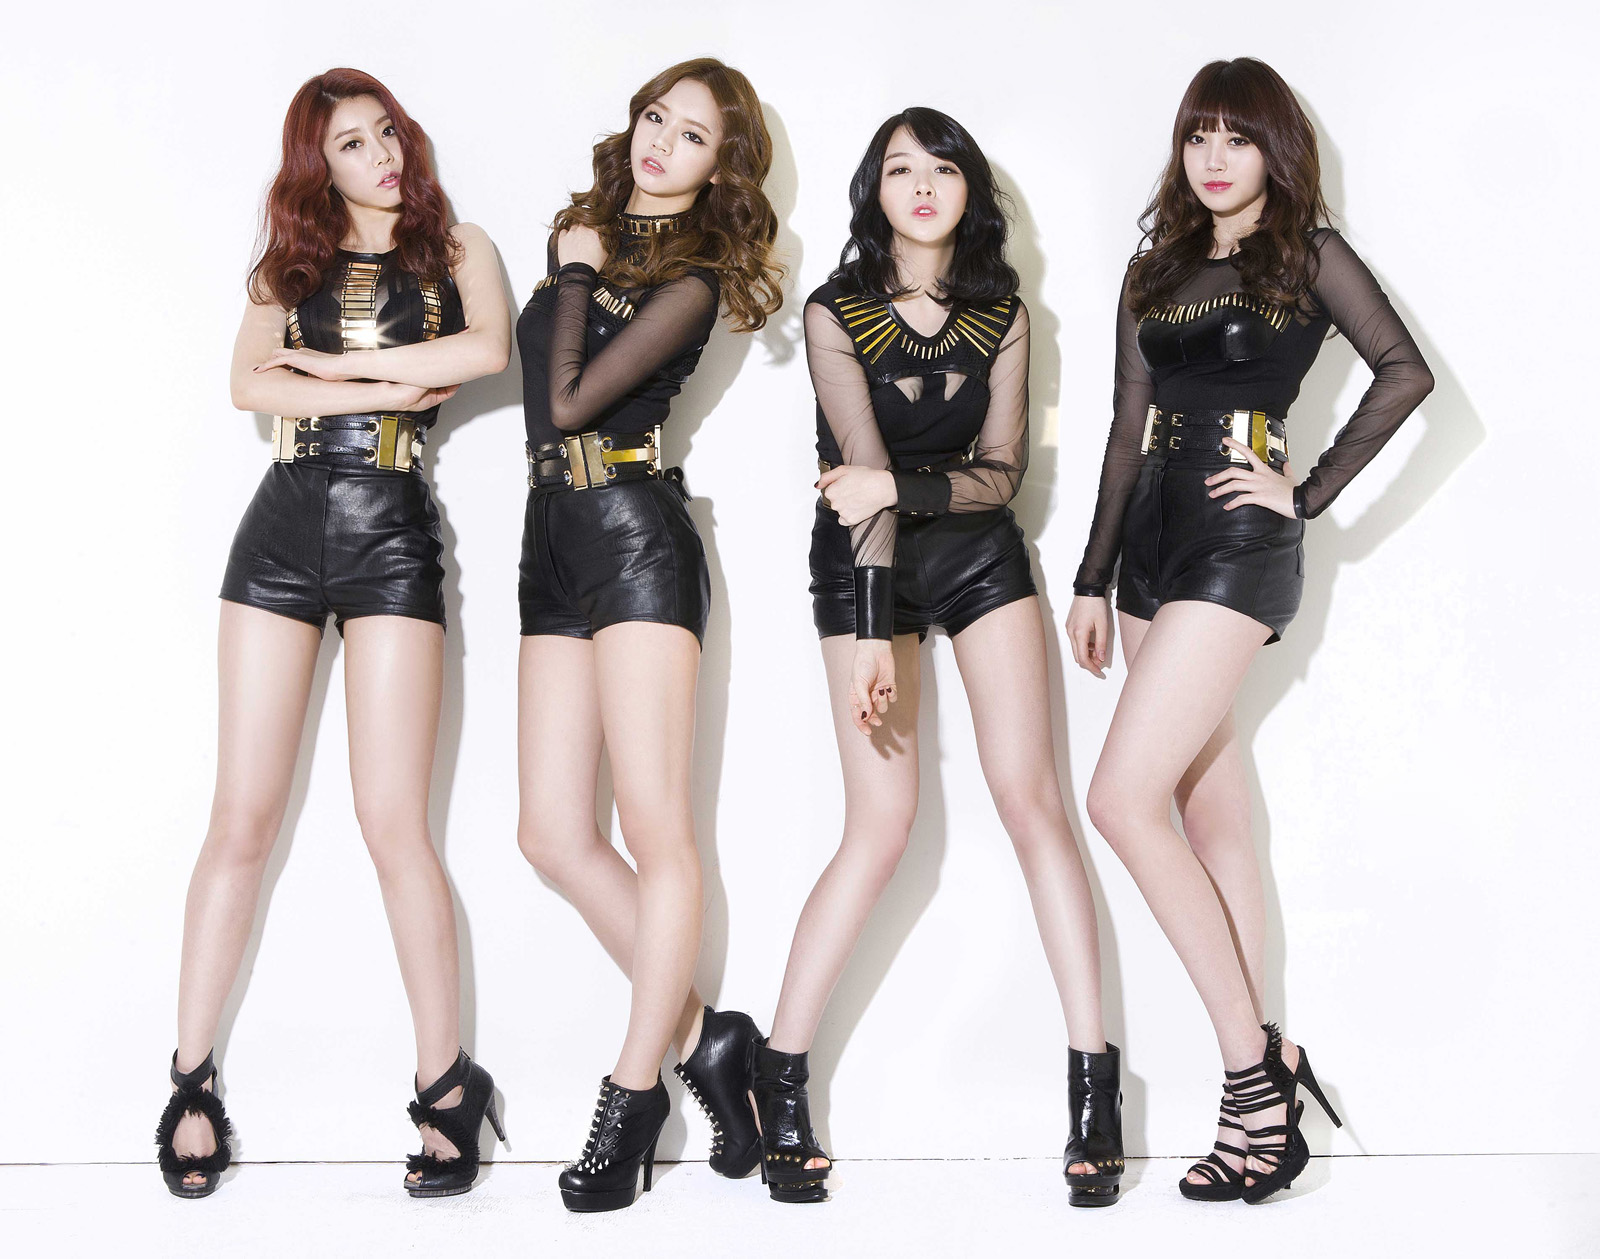 girls day wallpaper by - photo #15